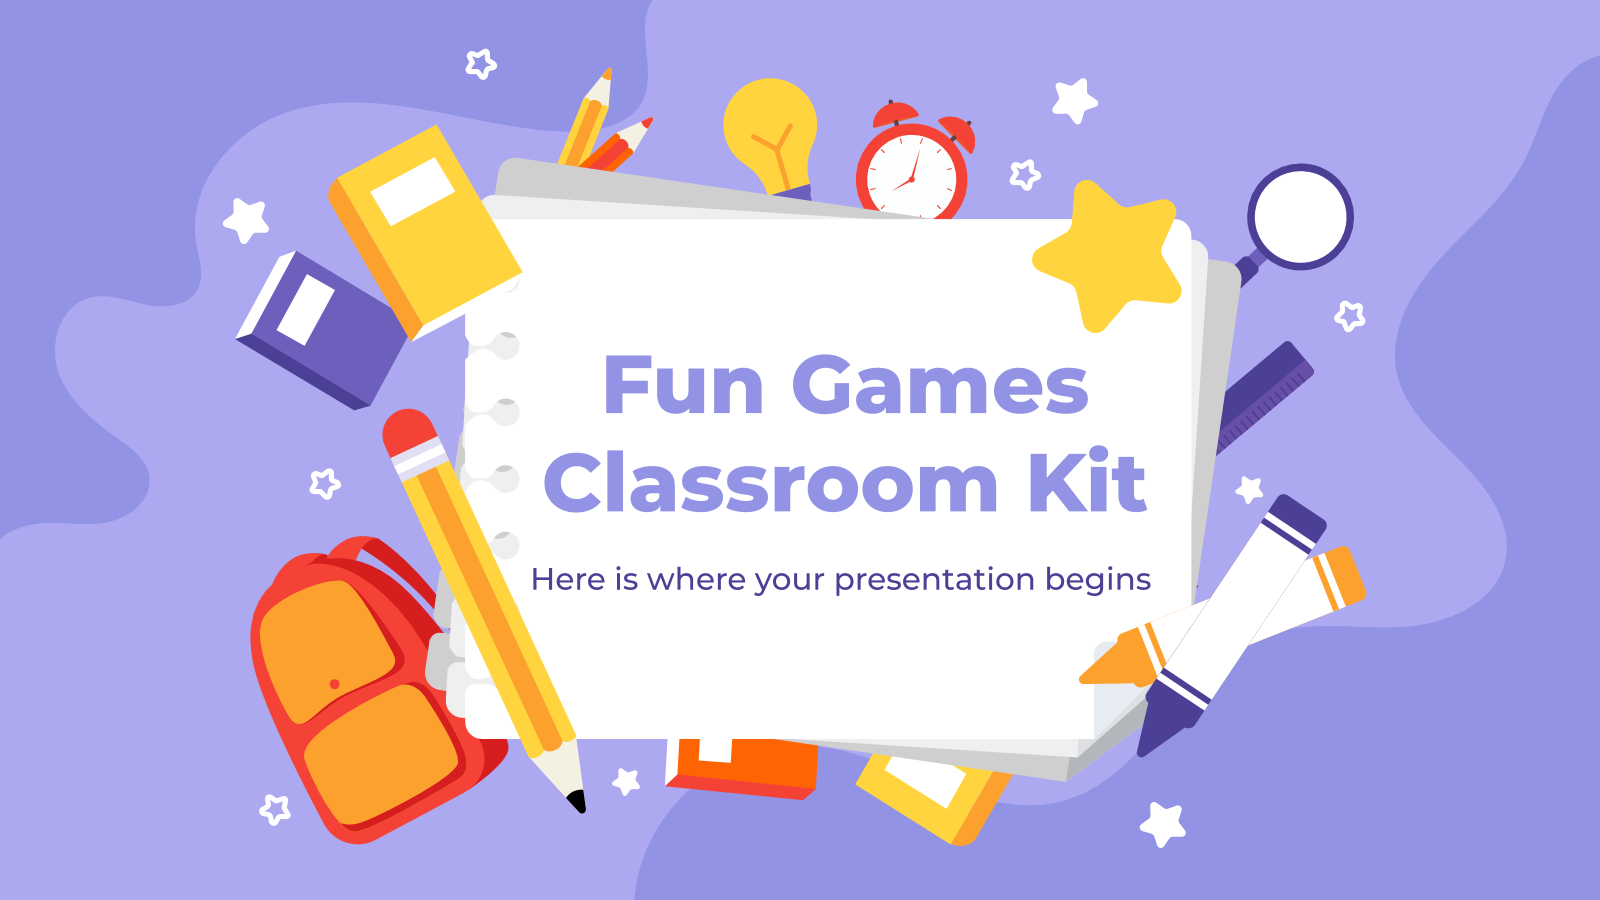 Fun Games Classroom Kit presentation template